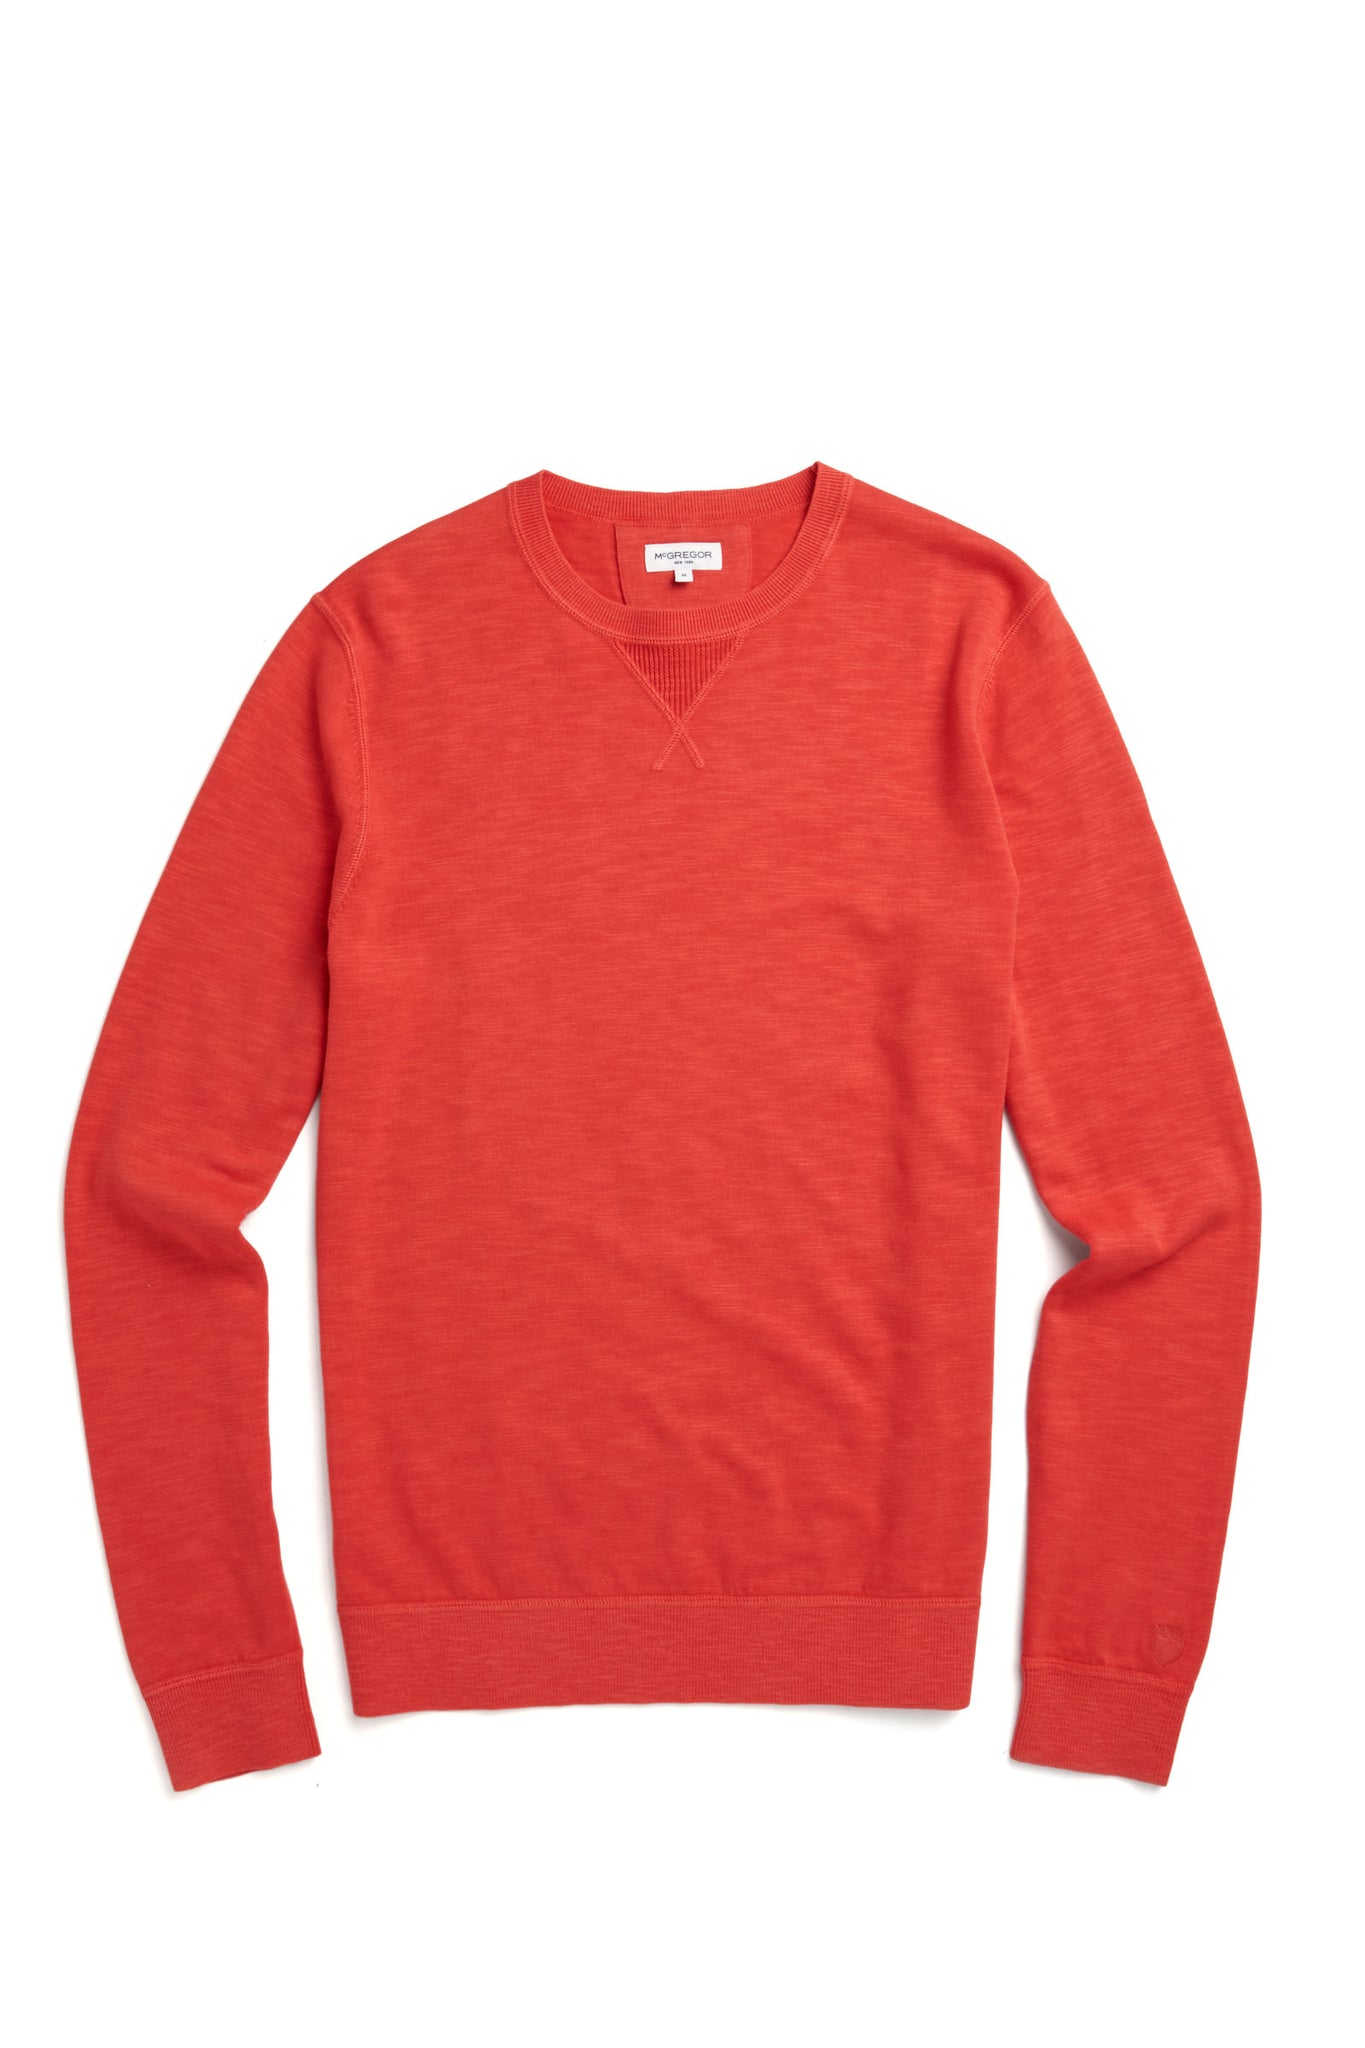 The McG Cotton GD Crew Sweater